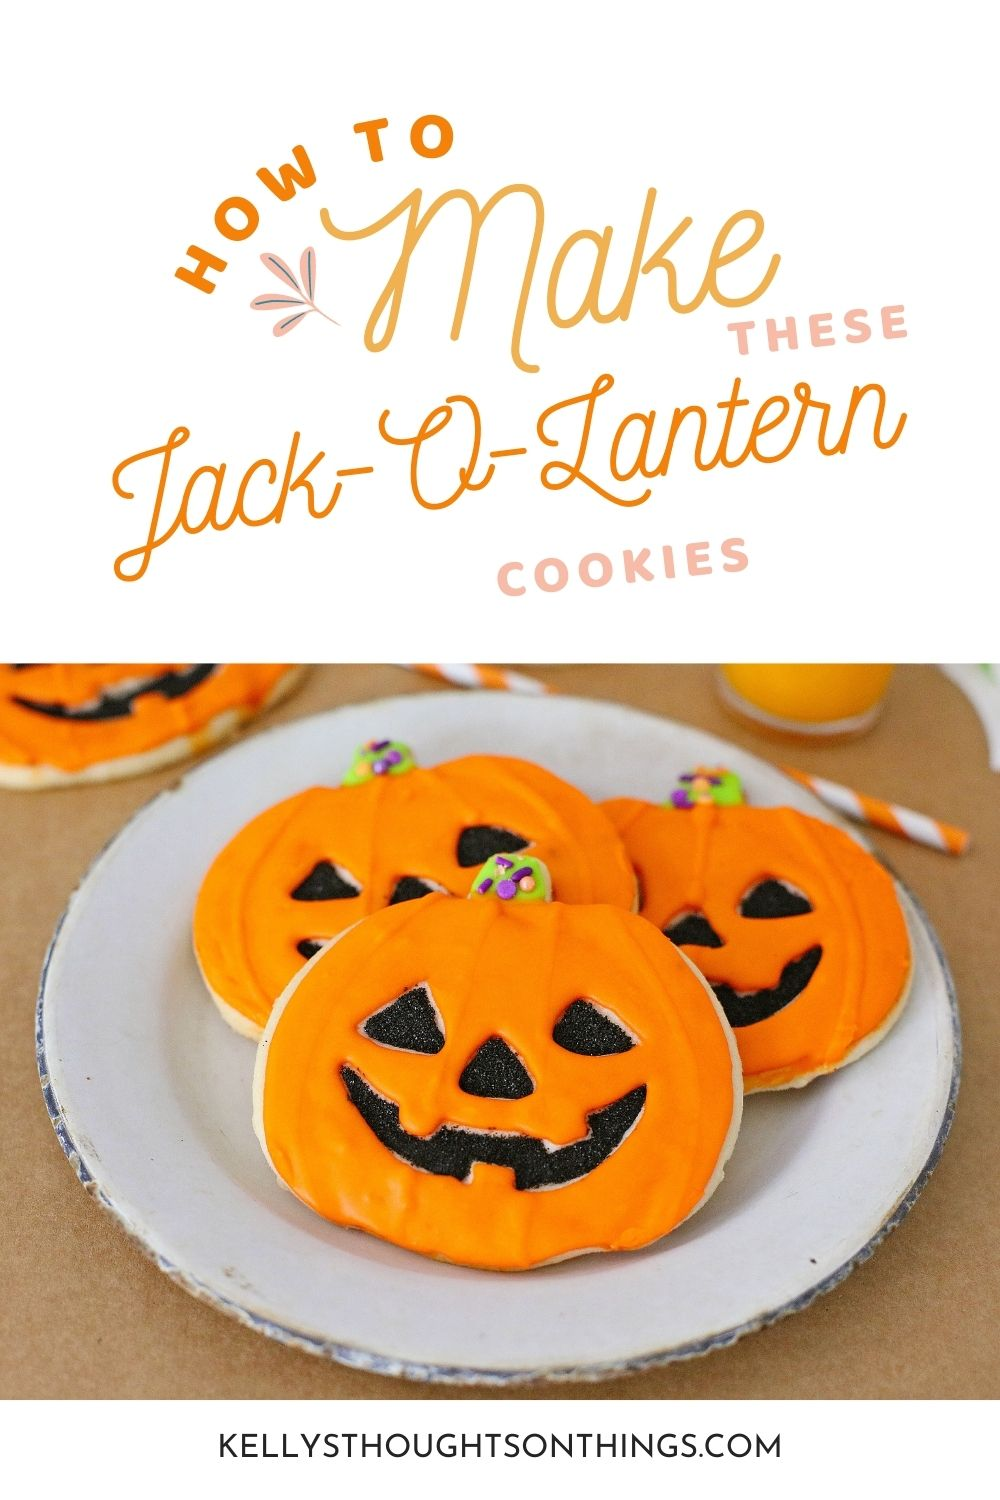 How To Make These Amazing Jack-O-Lantern Cookies